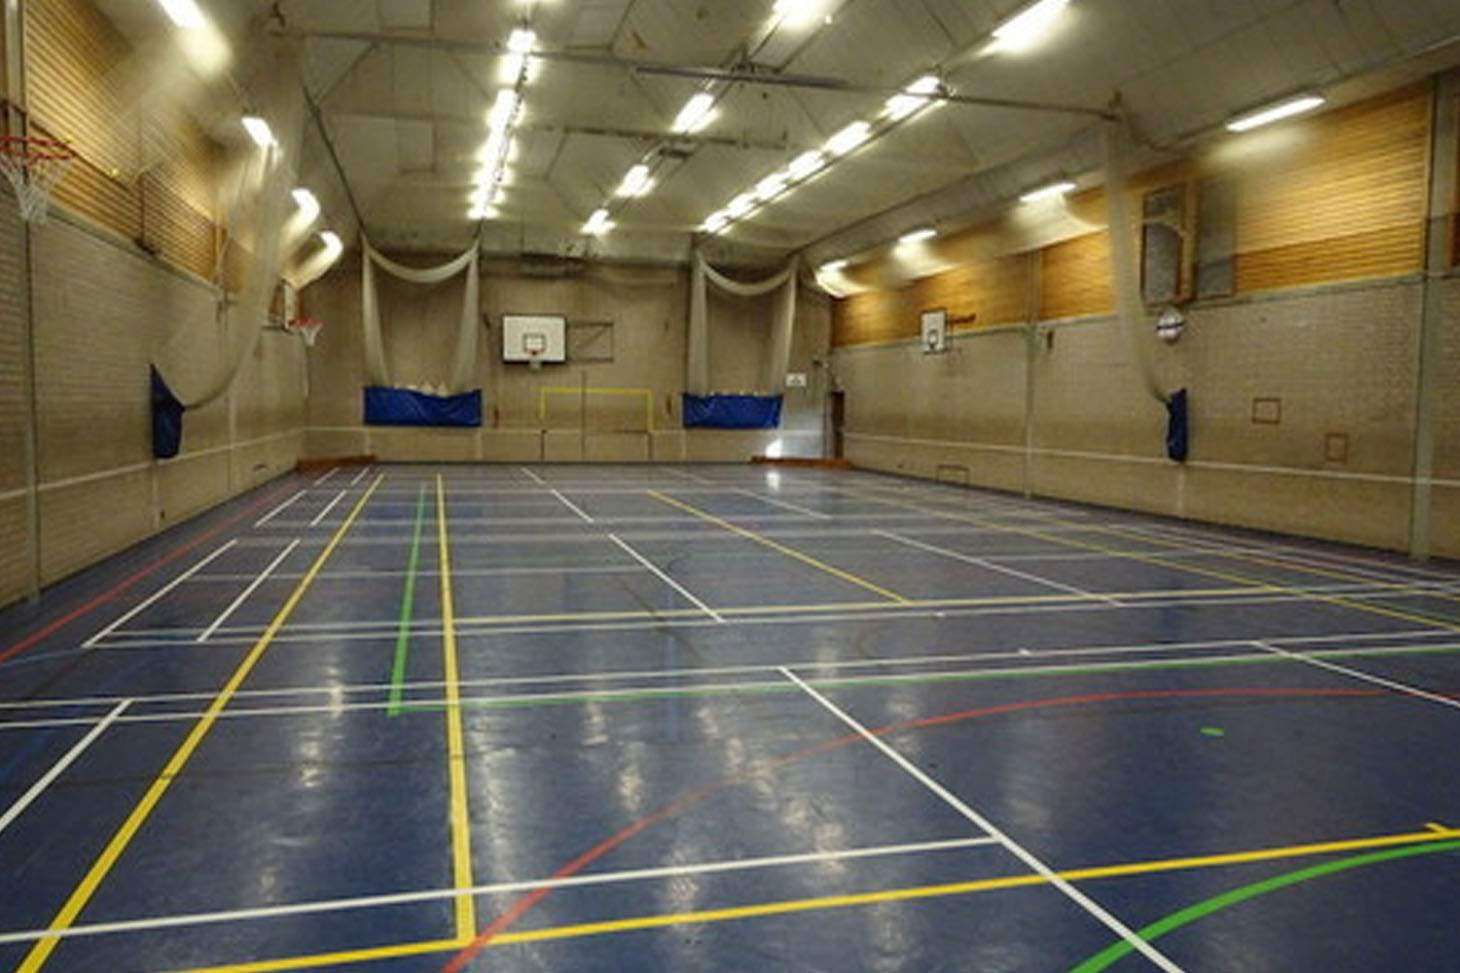 Robert Smyth Academy Indoor badminton court